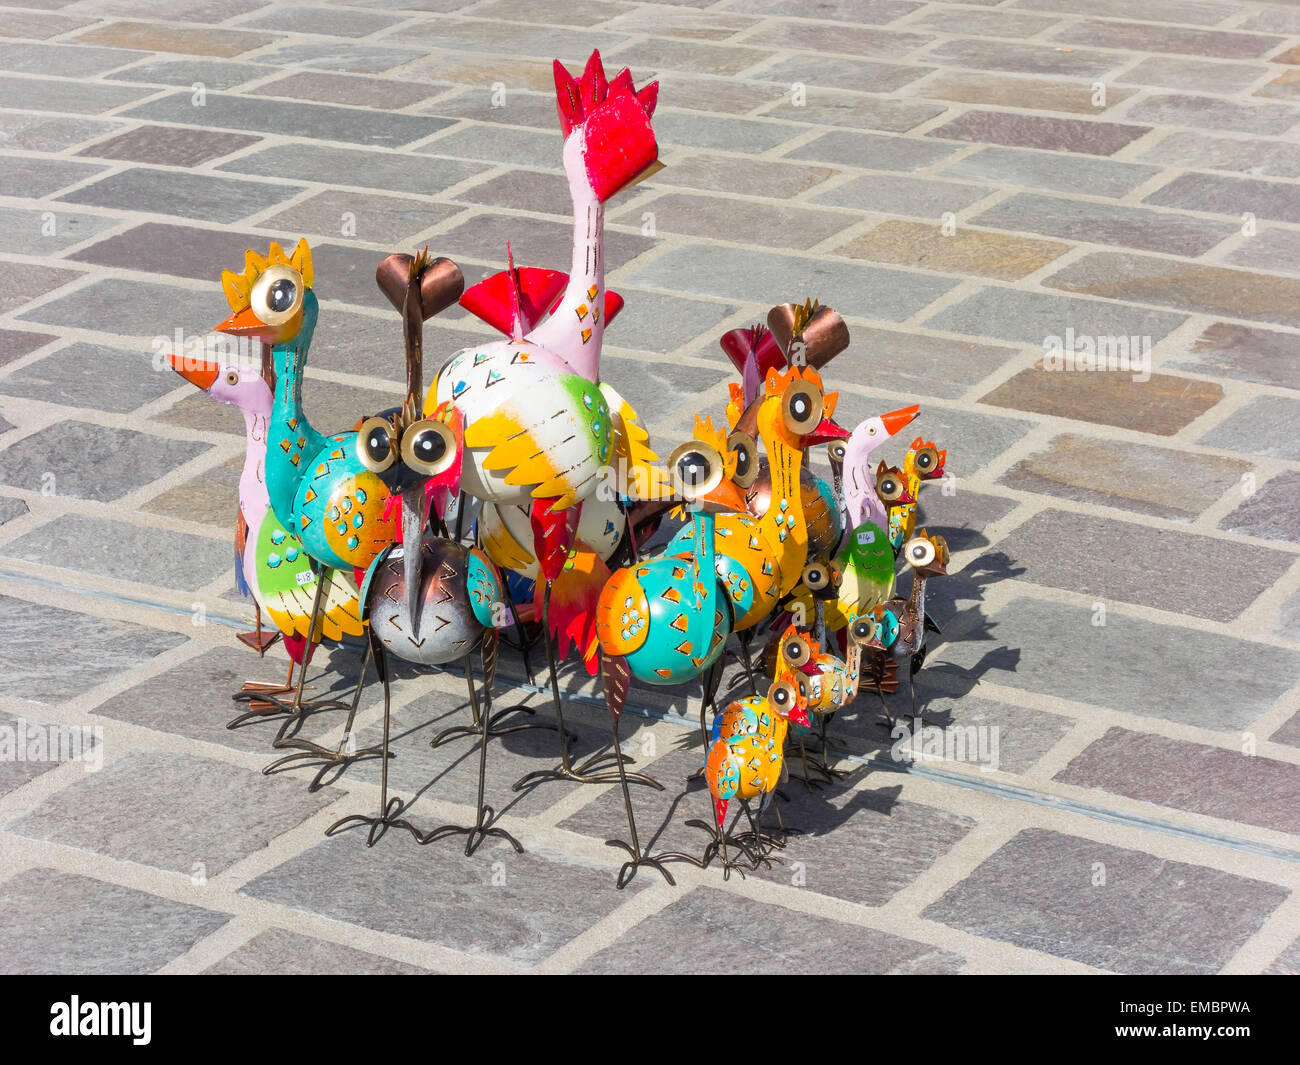 ... Brightly Painted Metal Bird Garden Ornaments On Sale In A Weekly Market    Stock Photo